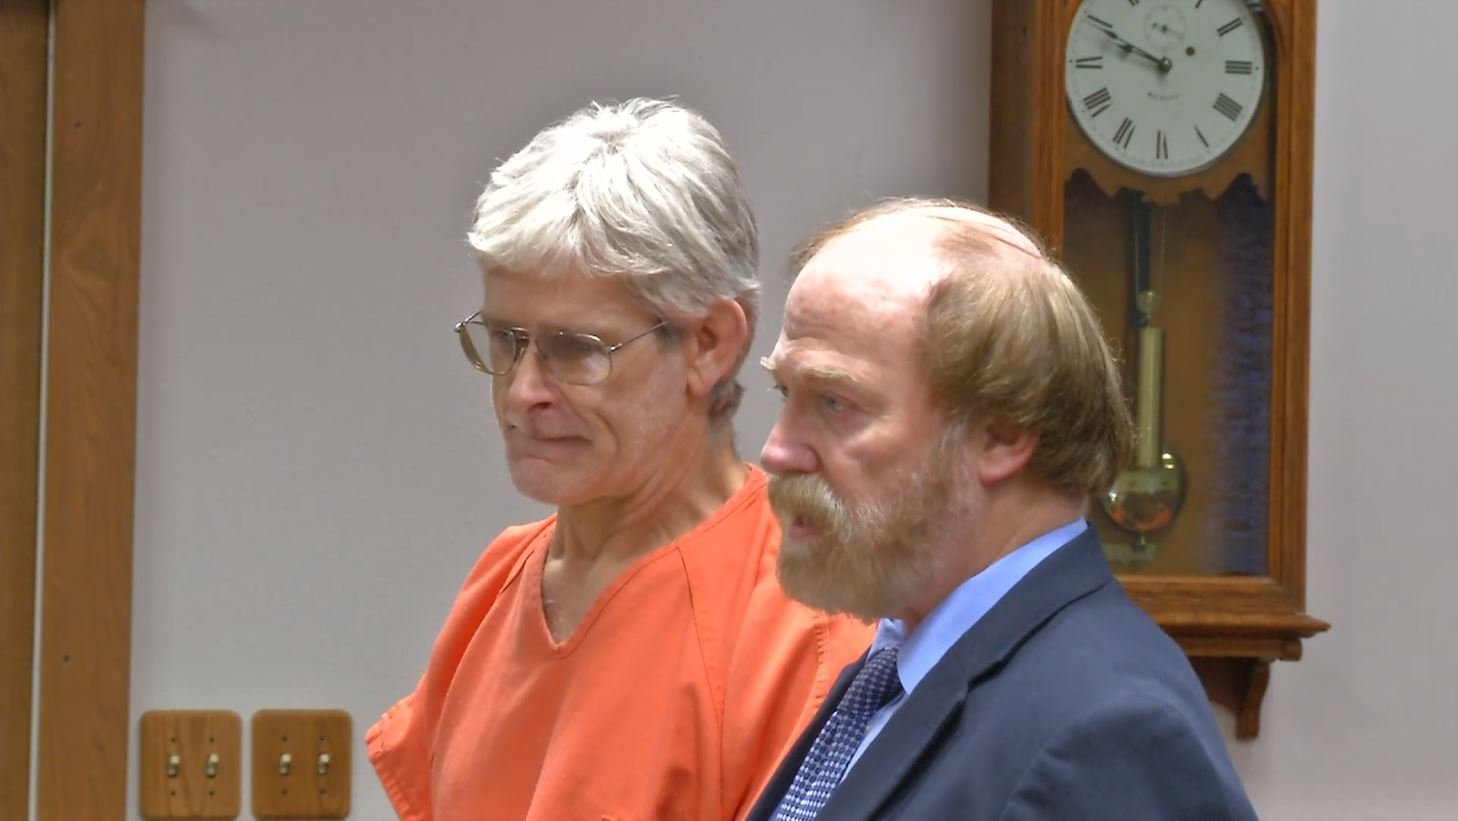 53-year-old David Wayne Nelson, left, appeared in Ravalli County District Court Wednesday. (MTN News photo)